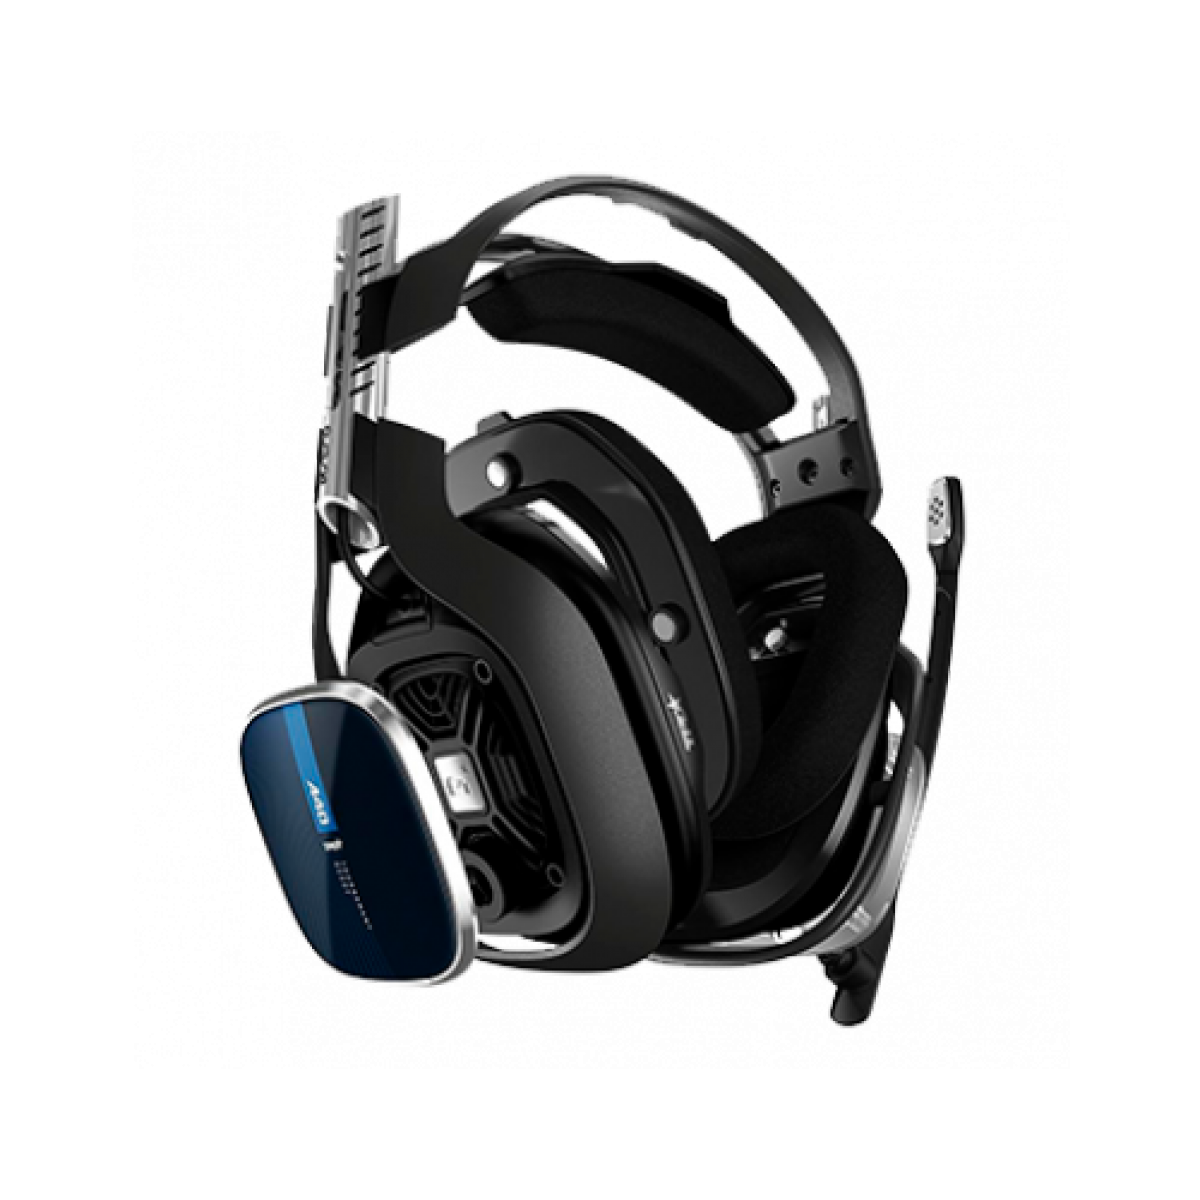 Headset Gamer Astro A40 + MixAmp Pro TR Gen 4 com Áudio Dolby, PS4, Pc, Black/Blue, 939-001791